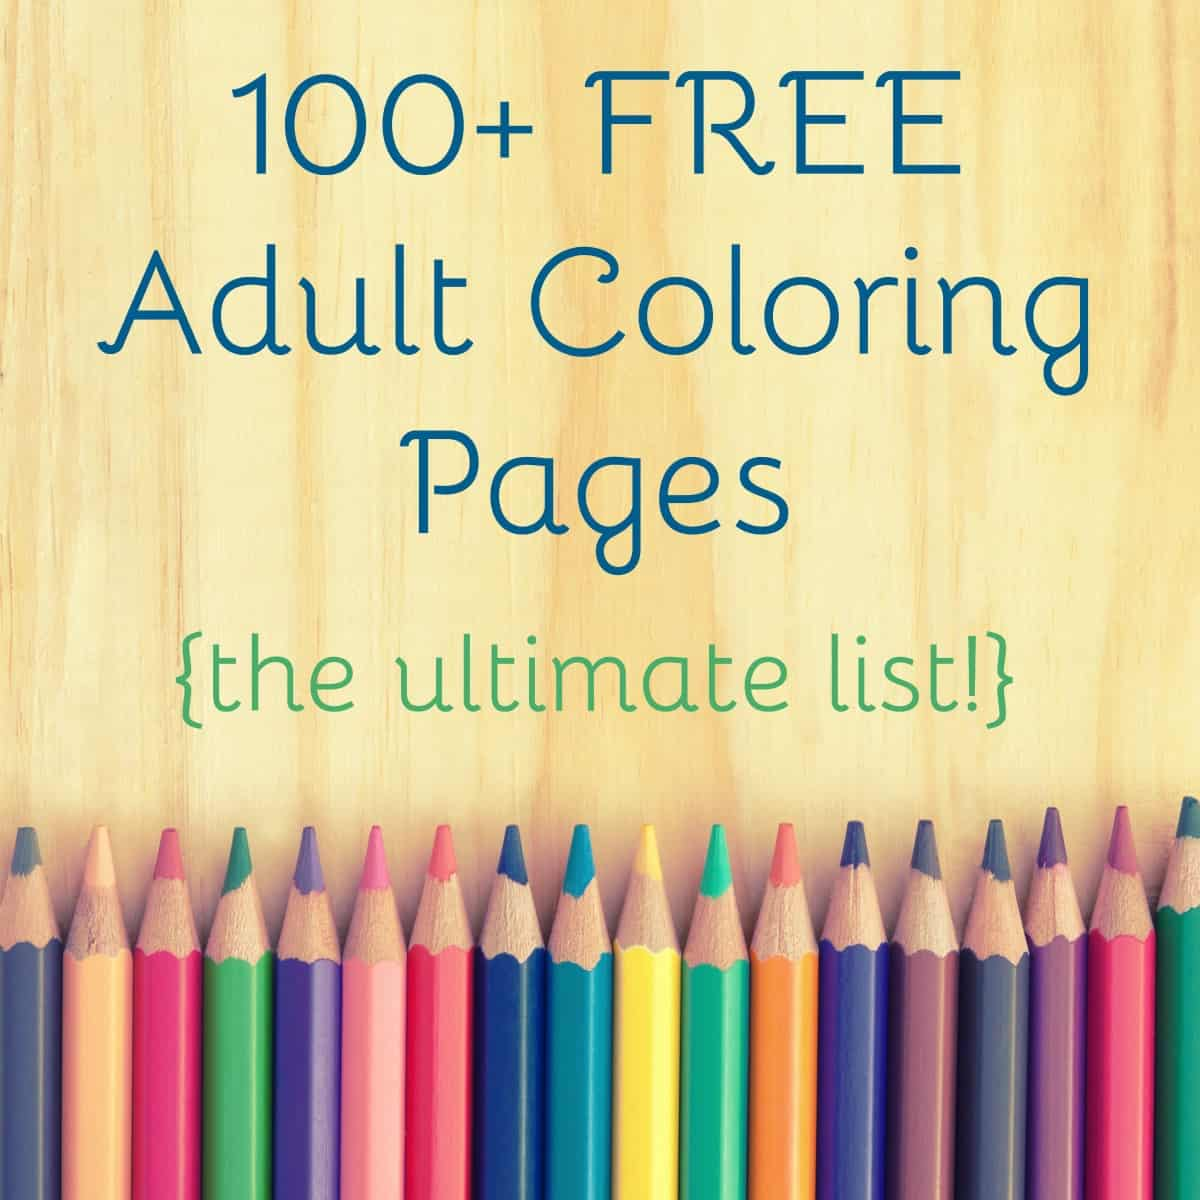 get links to over 100 free coloring pages youll love these favorites including - Free Coloring Pages Adult